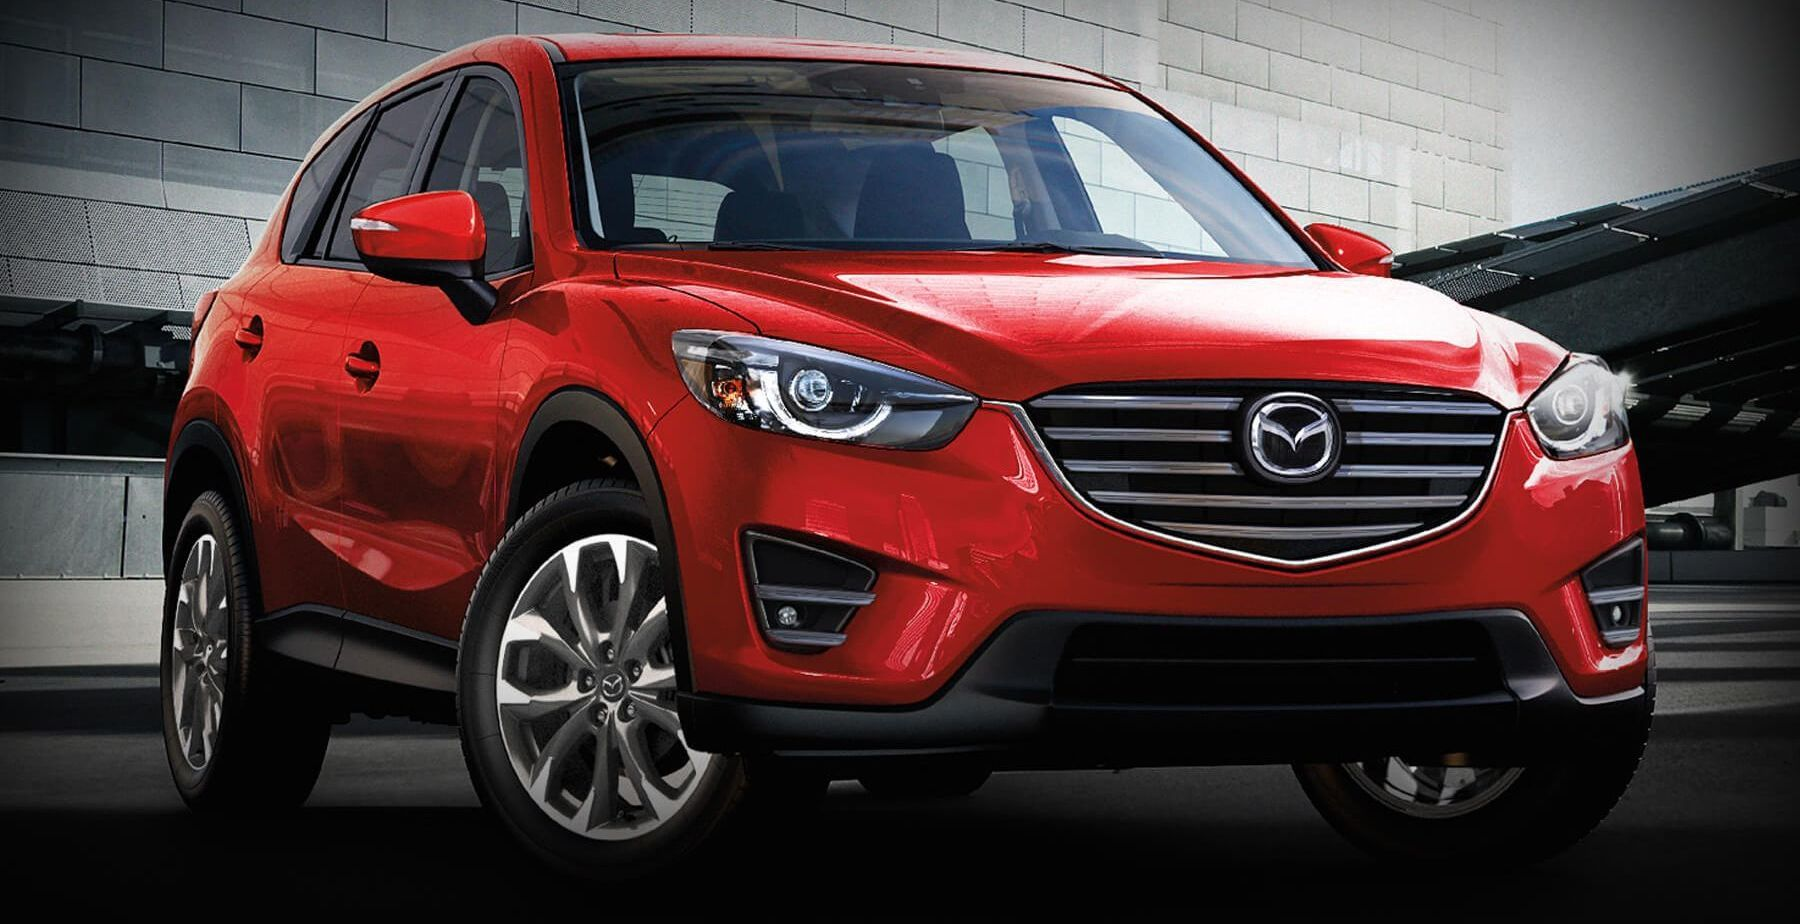 2017 mazda cx 5 for sale in fort walton beach fl zt motors. Black Bedroom Furniture Sets. Home Design Ideas